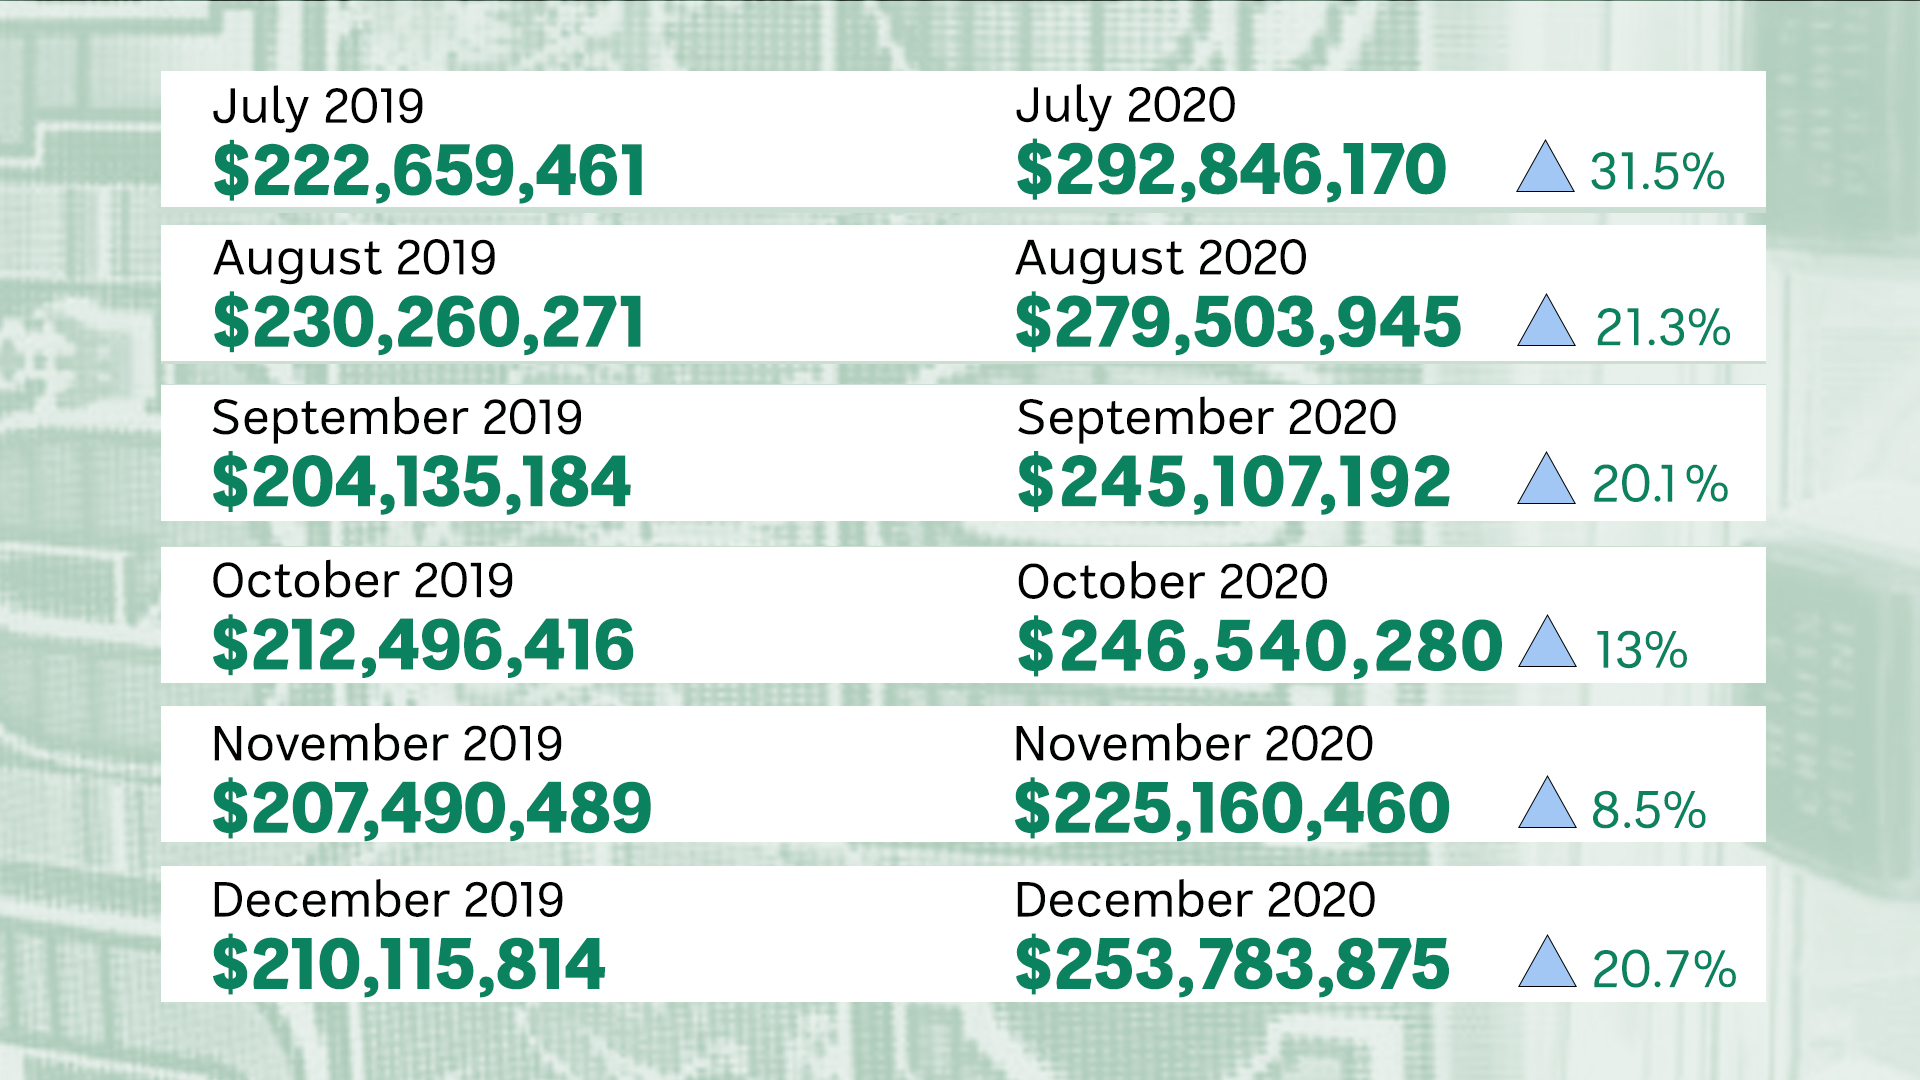 Queensland poker machinelosses in 2019compared to 2021